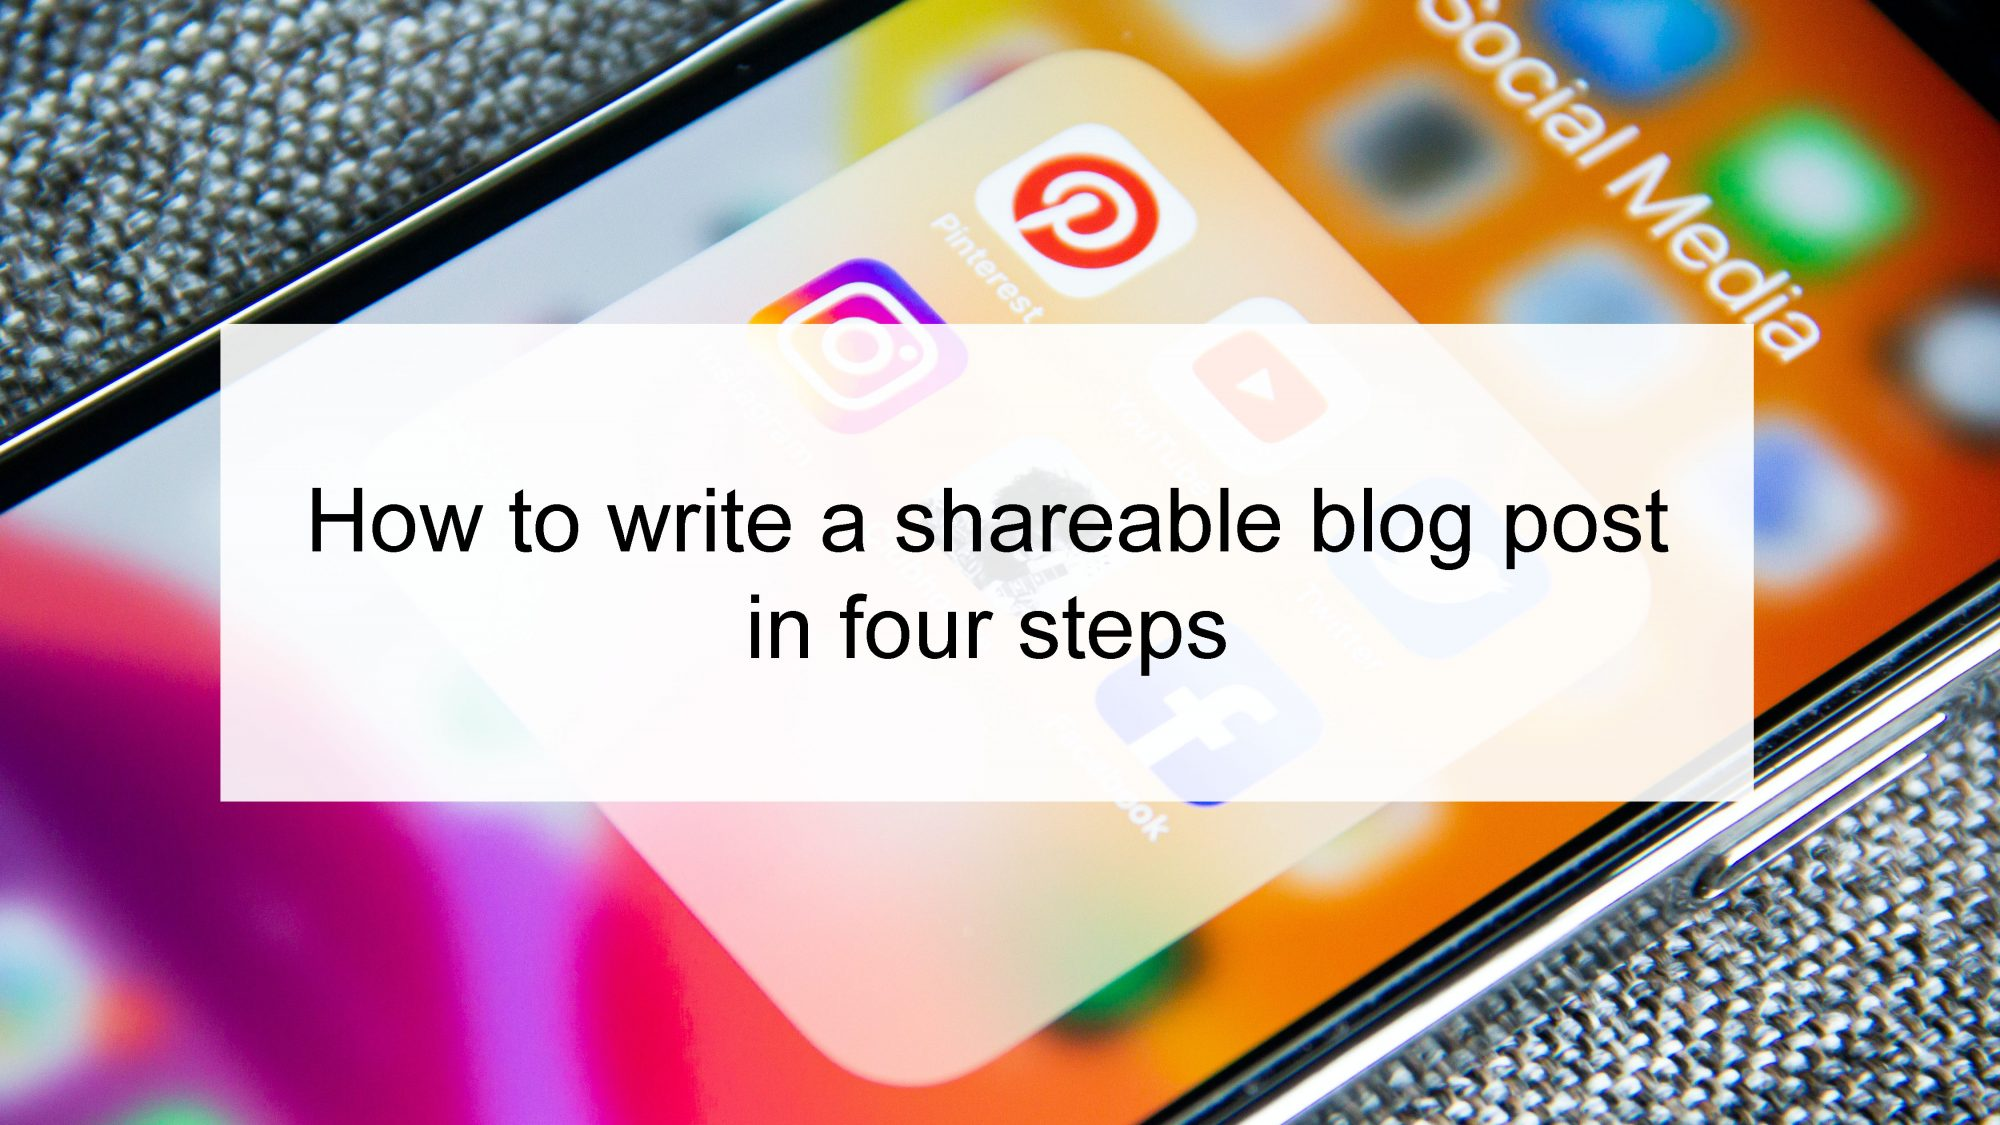 How to Write a Shareable Blog Post in Four Steps